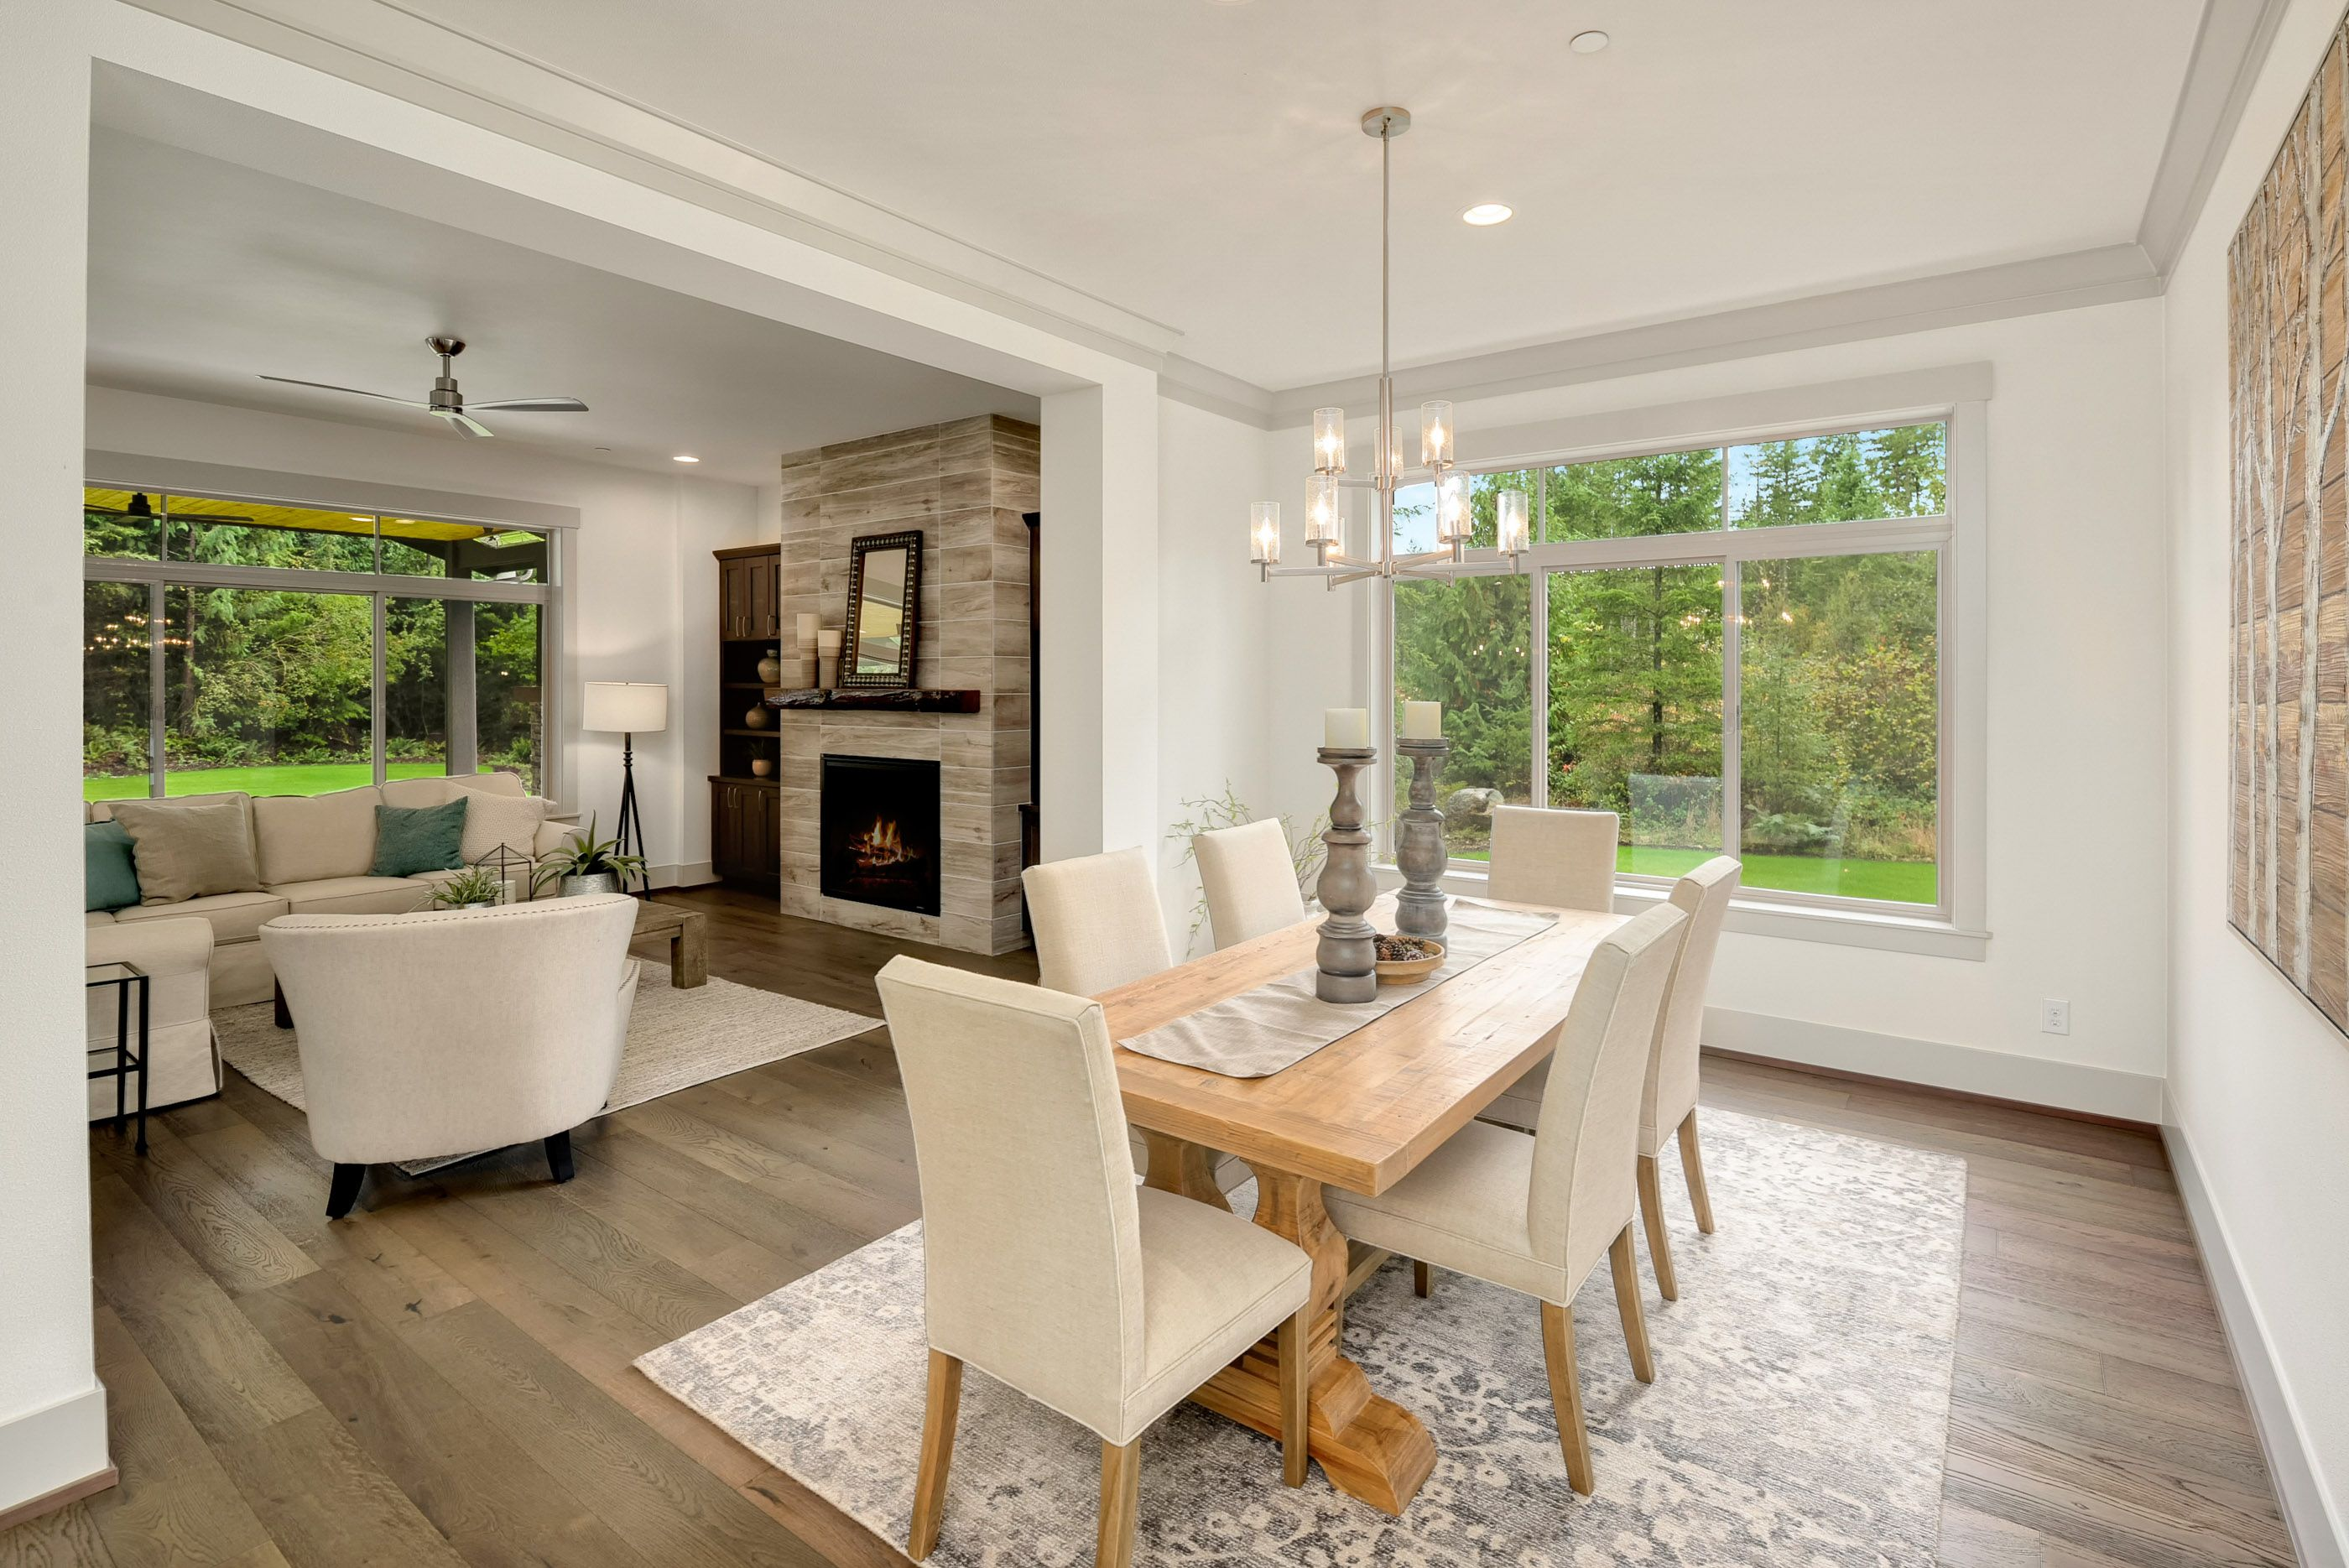 Living Area featured in the Plan 164 By Schneider Family Homes in Seattle-Bellevue, WA